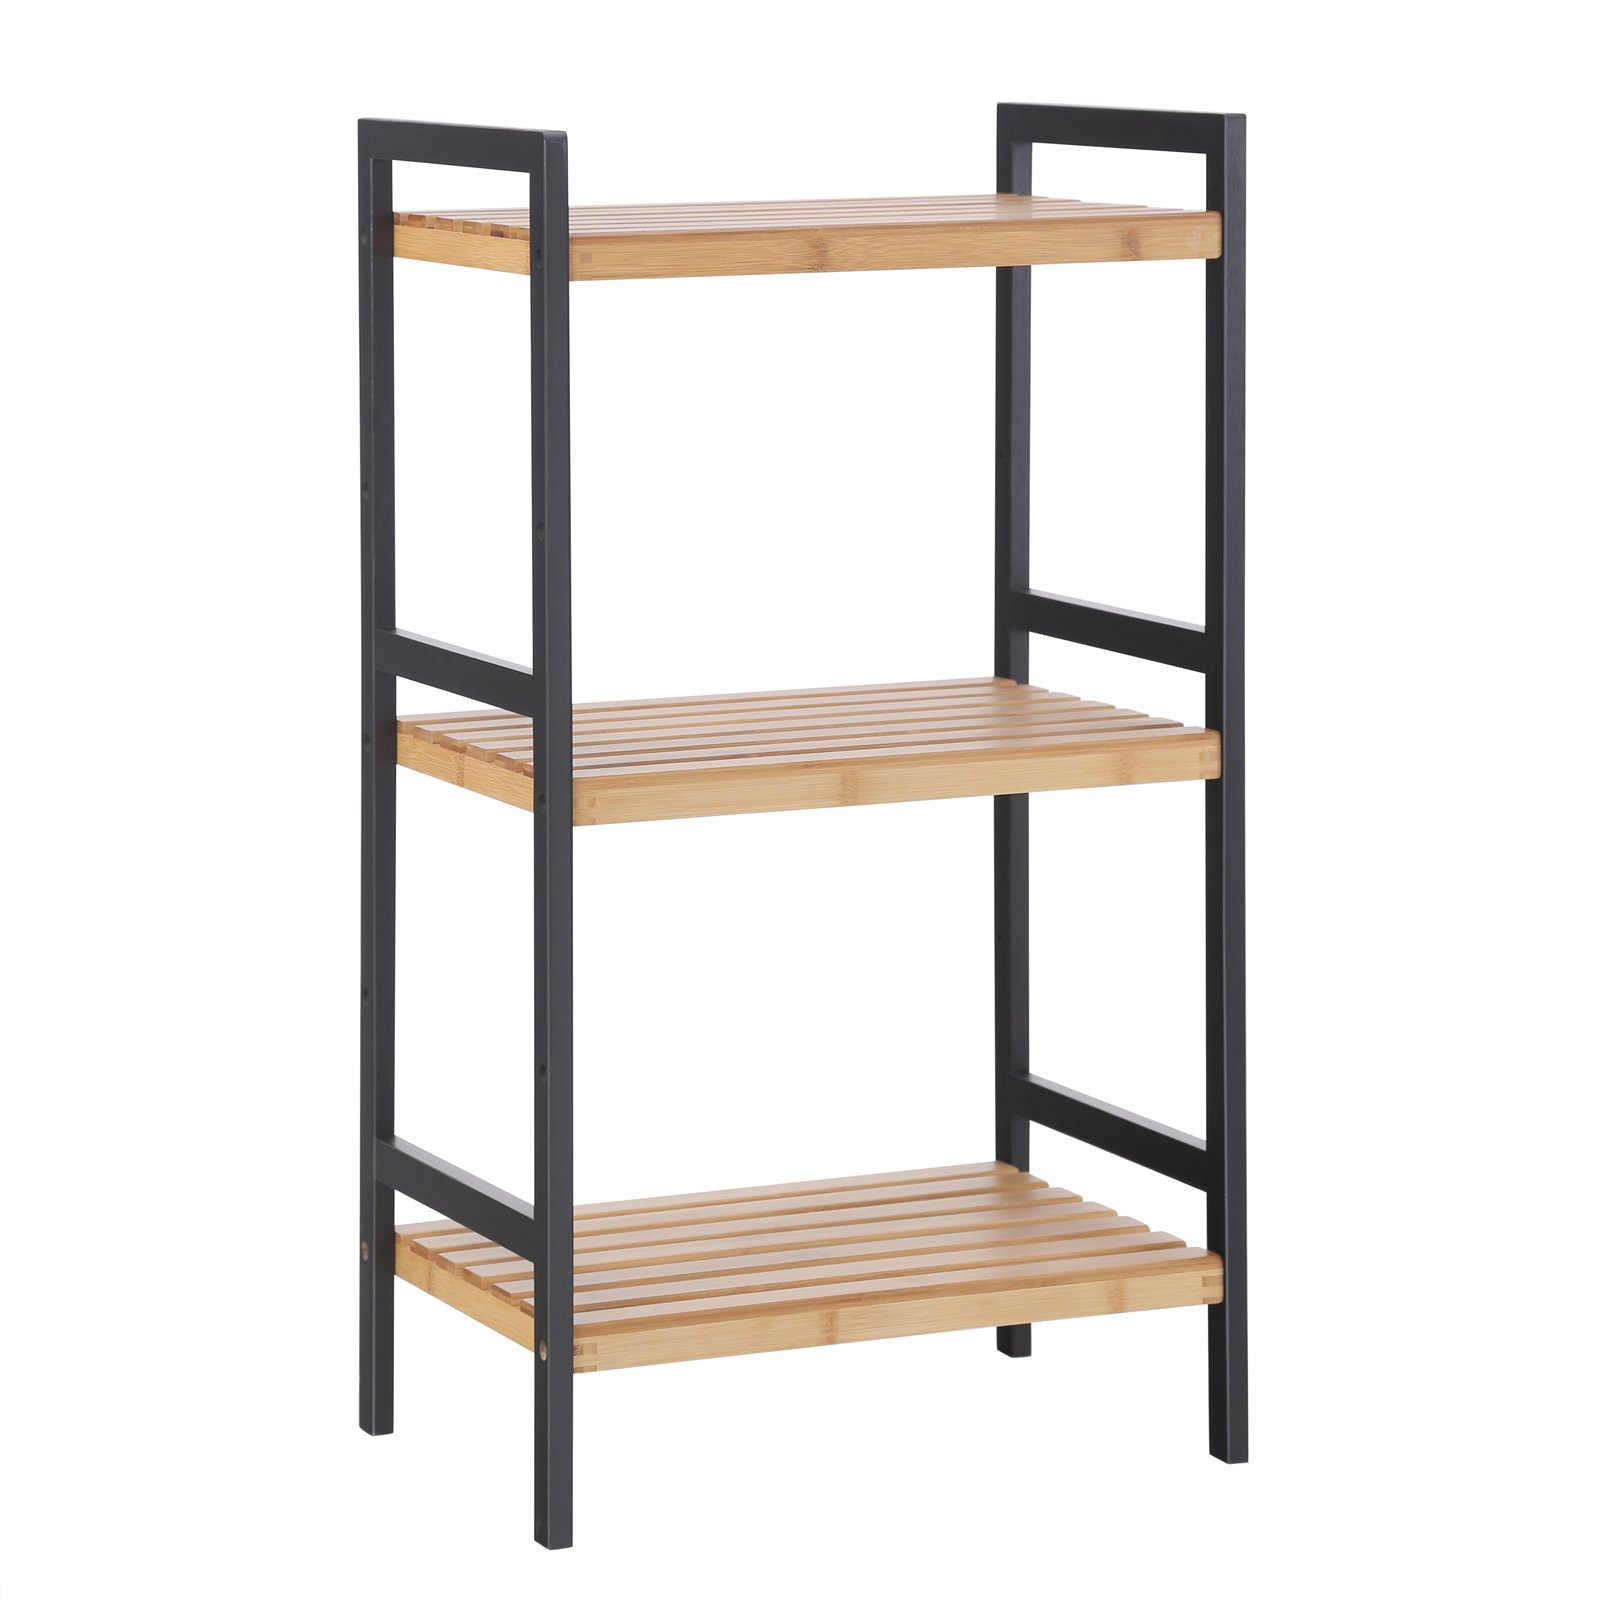 SONGMICS Multifunctional 3-Tier Storage Rack,Shelving Unit Stand Tower,Bookcase for Bathroom Living Room Kitchen 17.7 x 12.4 x 31.5, Holds up to 80 lbs,100% Bamboo Wood Black Natural UBCB73BN